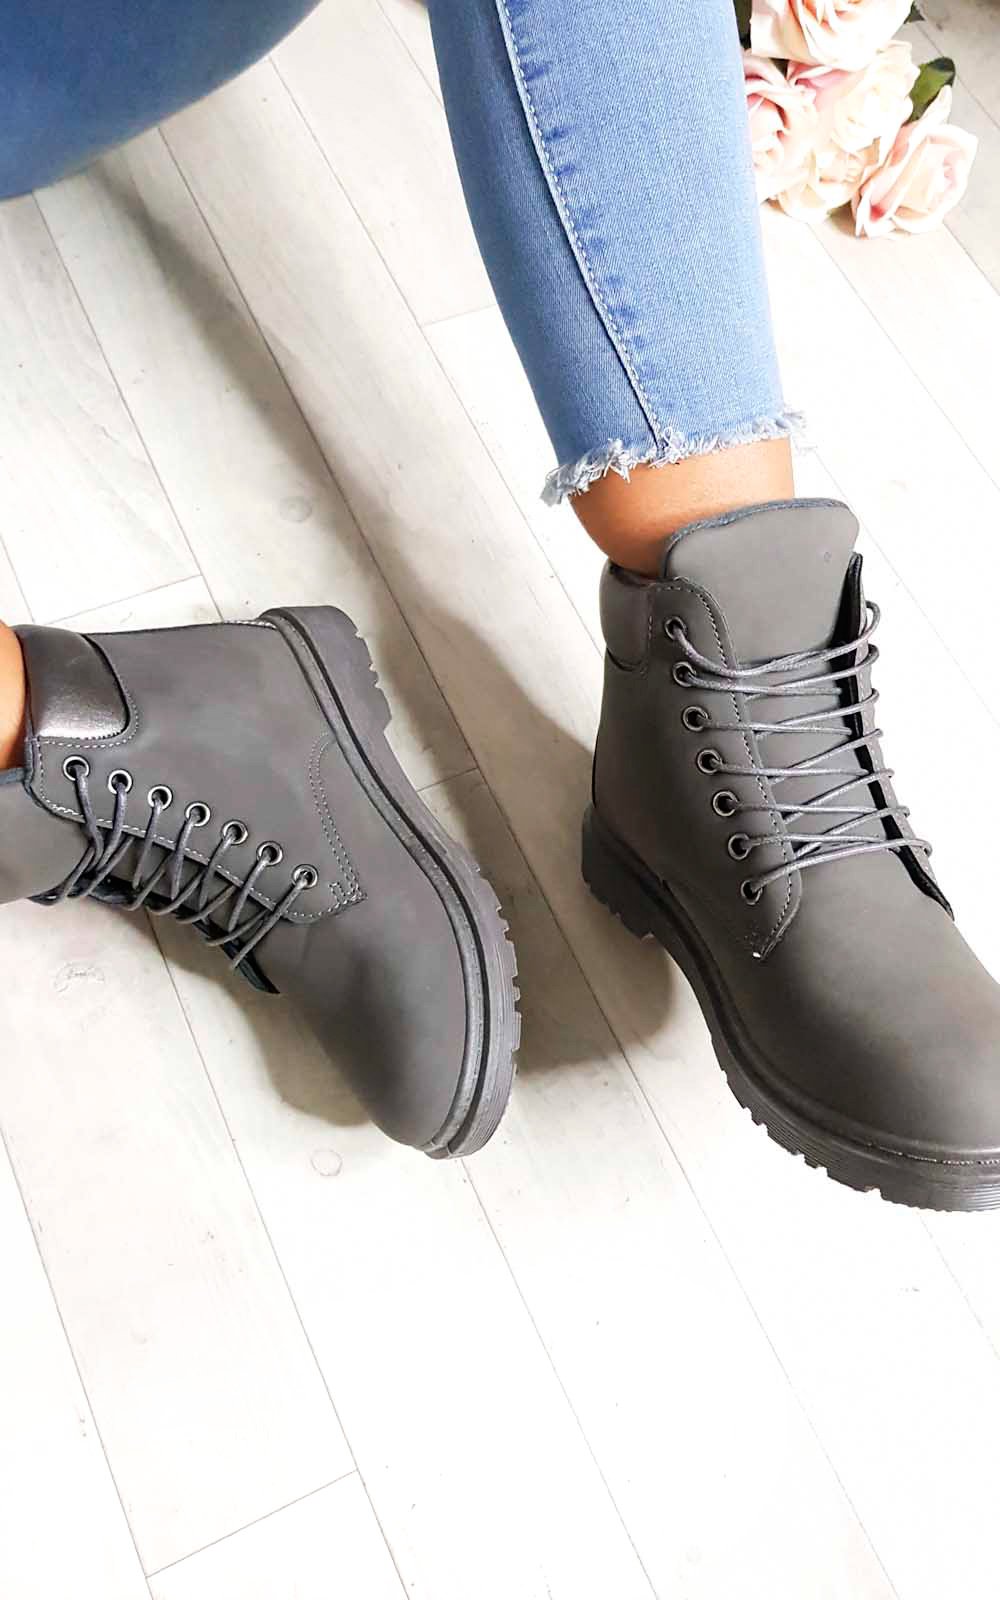 Ella Lace Up Boots in Grey